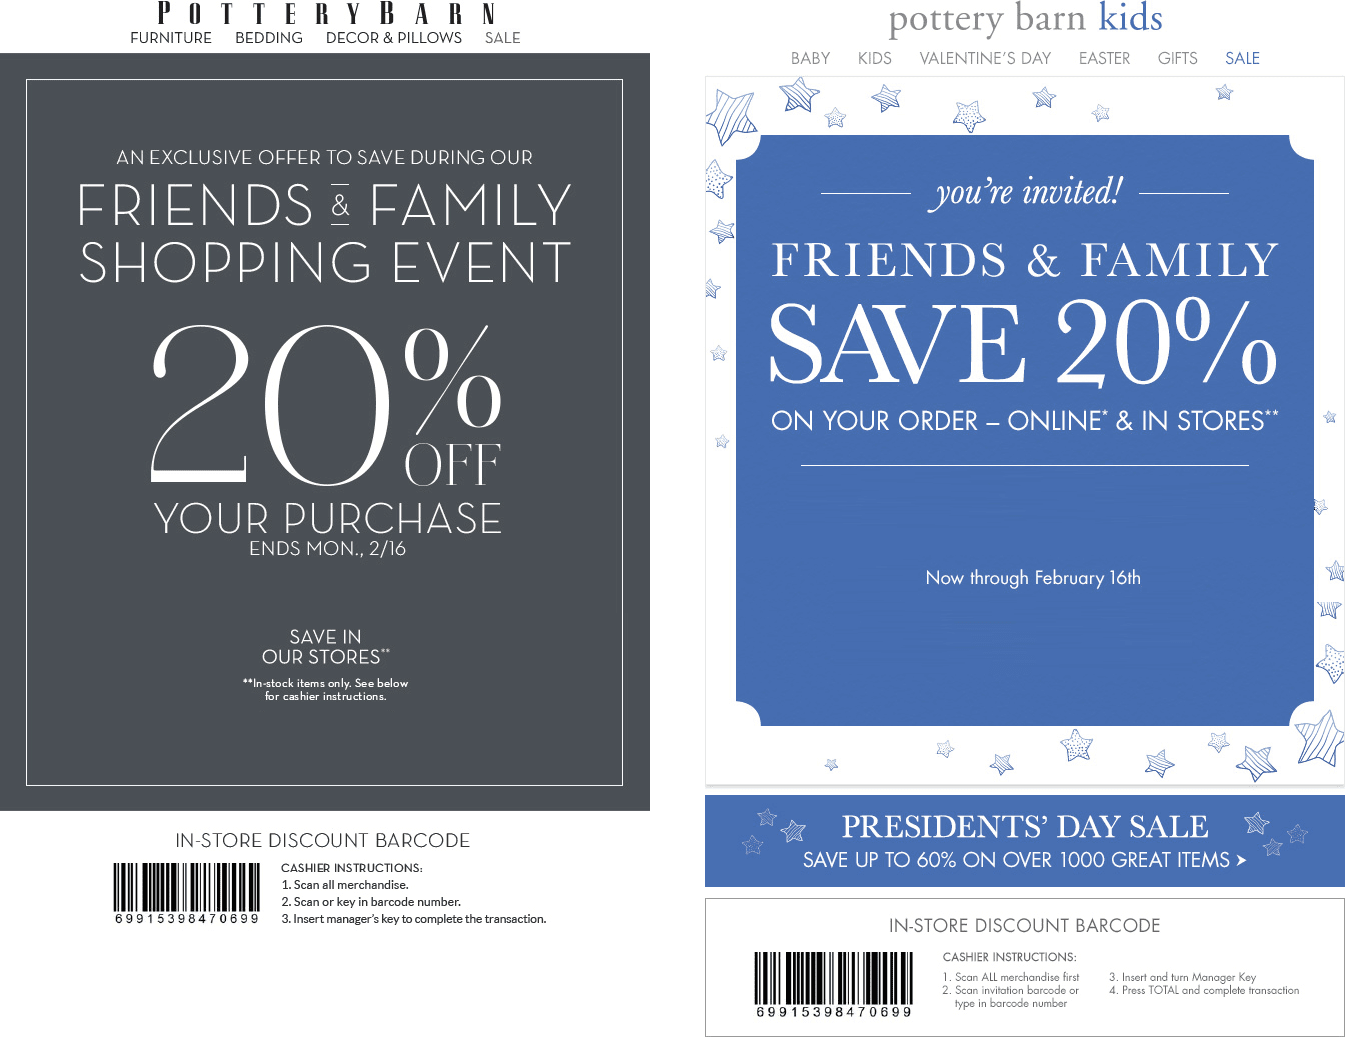 Williams And Sonoma Promo Code 2015